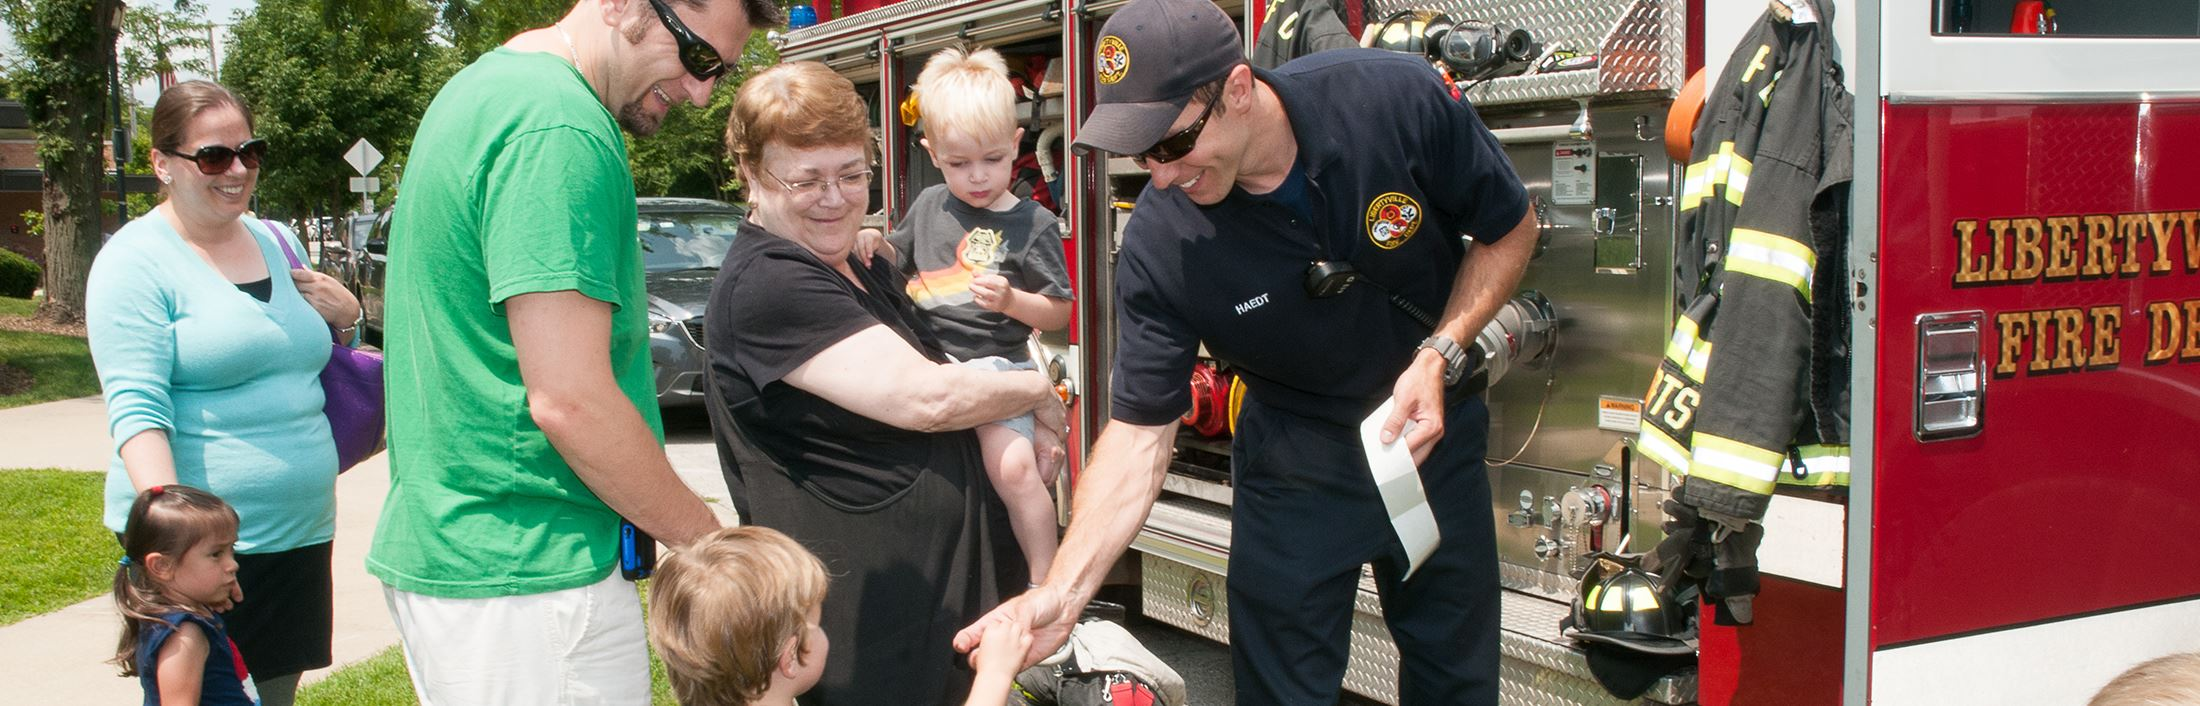 Fire Fighter Giving Sticker to Child